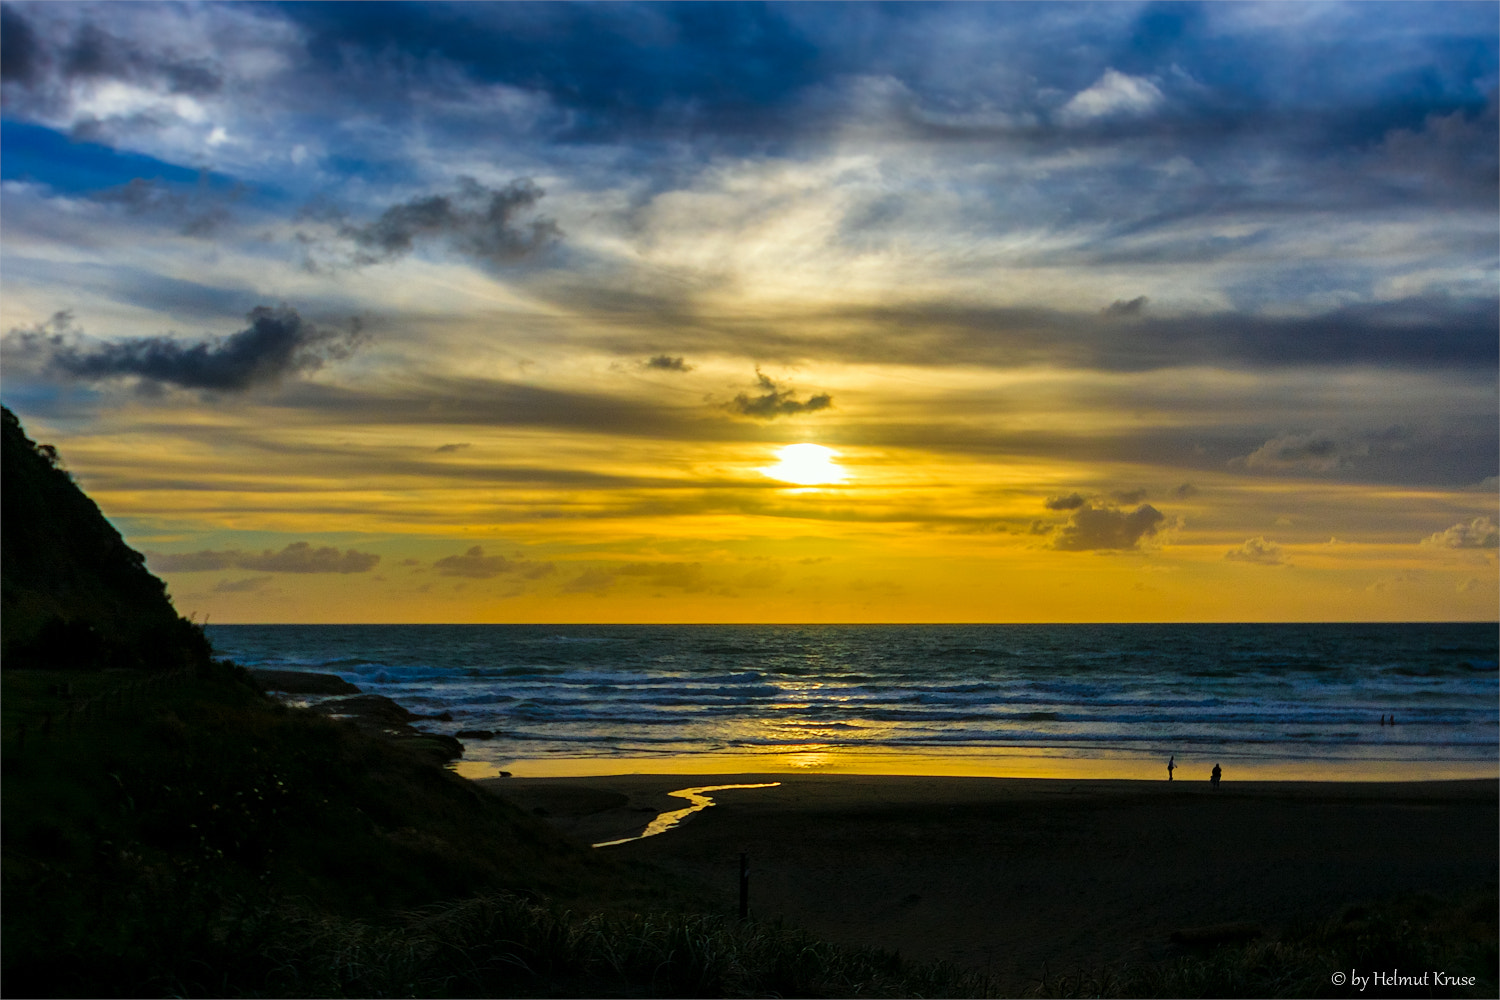 Photograph Glowing Sky during sunset at the westcoast, New Zealand by Helmut Kruse on 500px